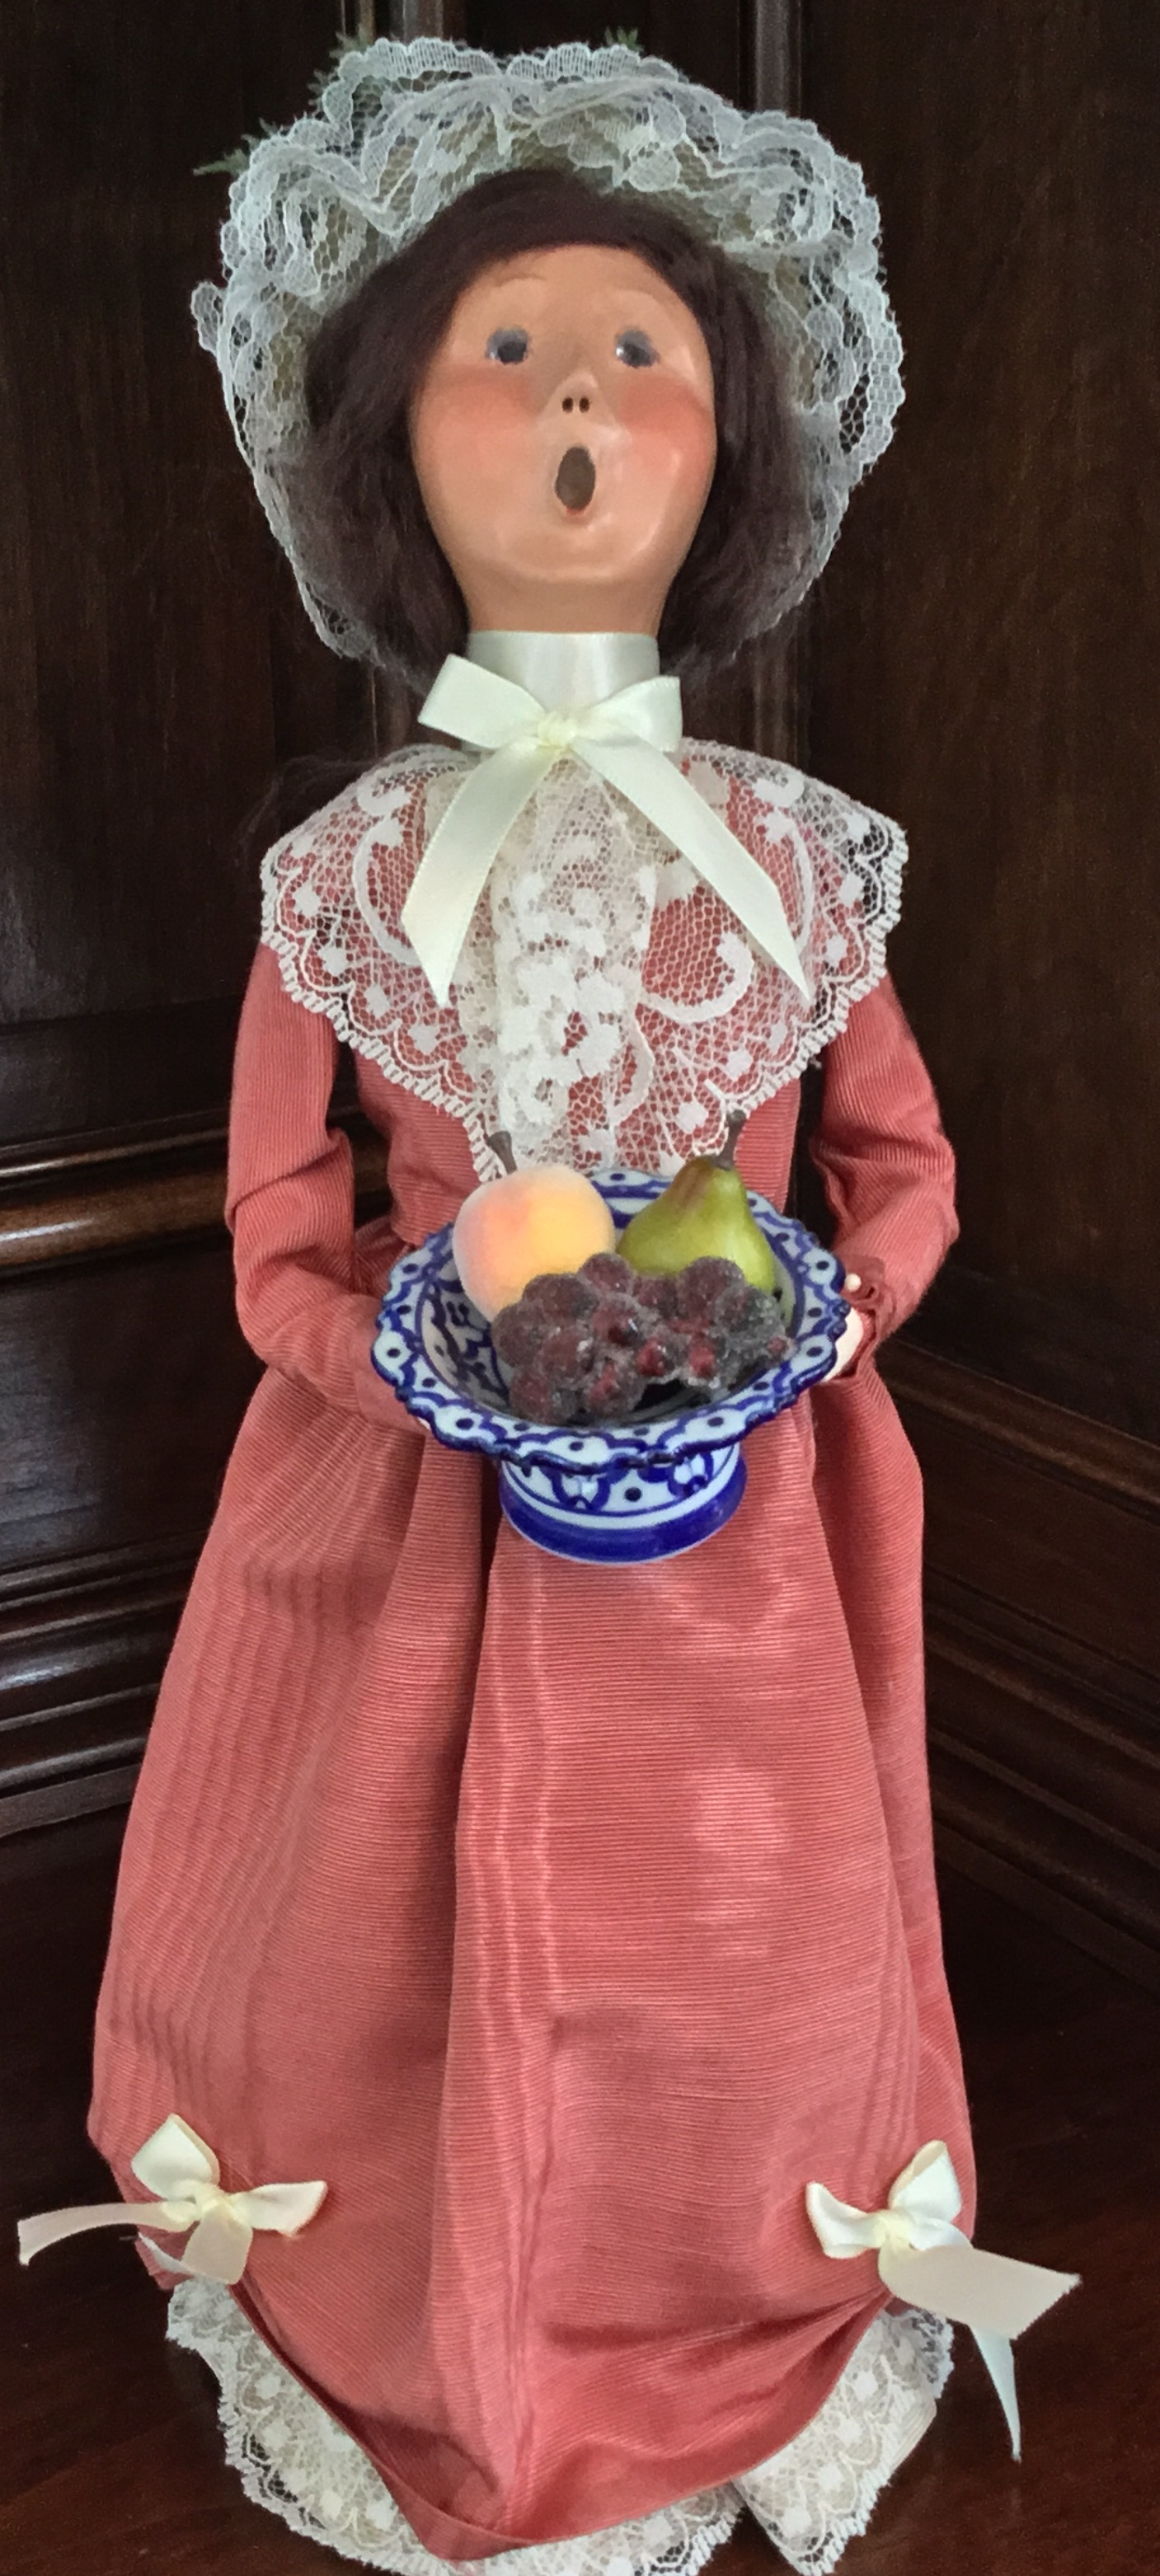 Byers' Choice, Woman with Fruit Bowl